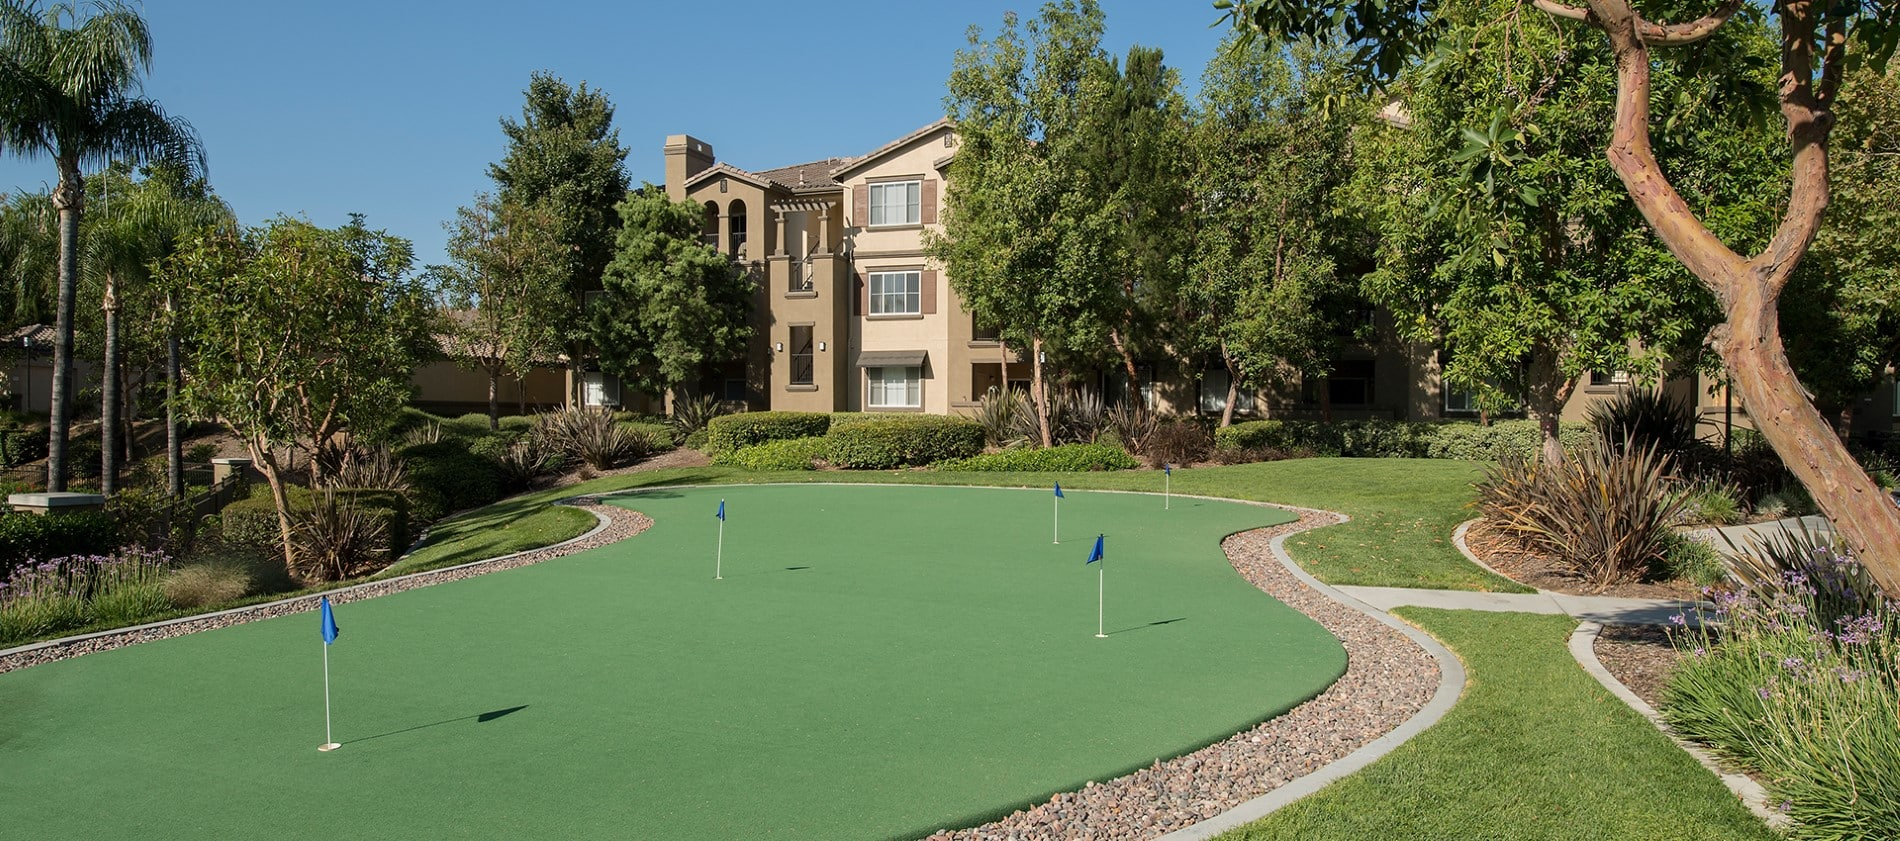 Putting Course at Esplanade Apartment Homes in Riverside, CA